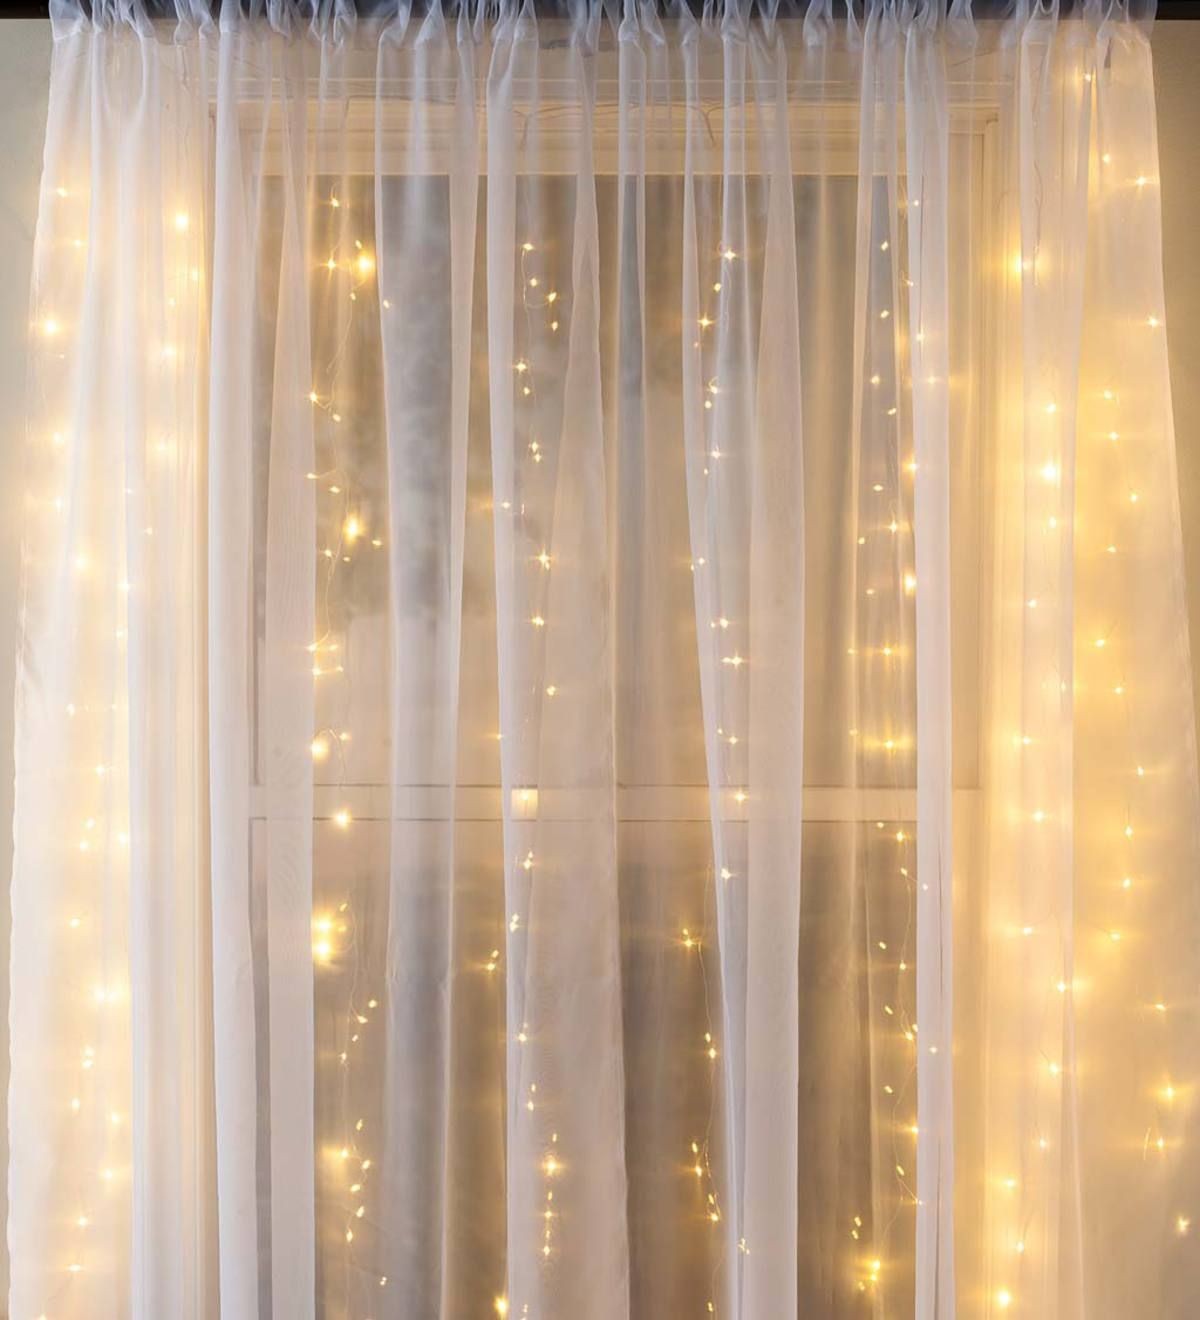 How To Make Curtain Lights Micro Curtain Lights Make It Easy To Transform Any Space In Your